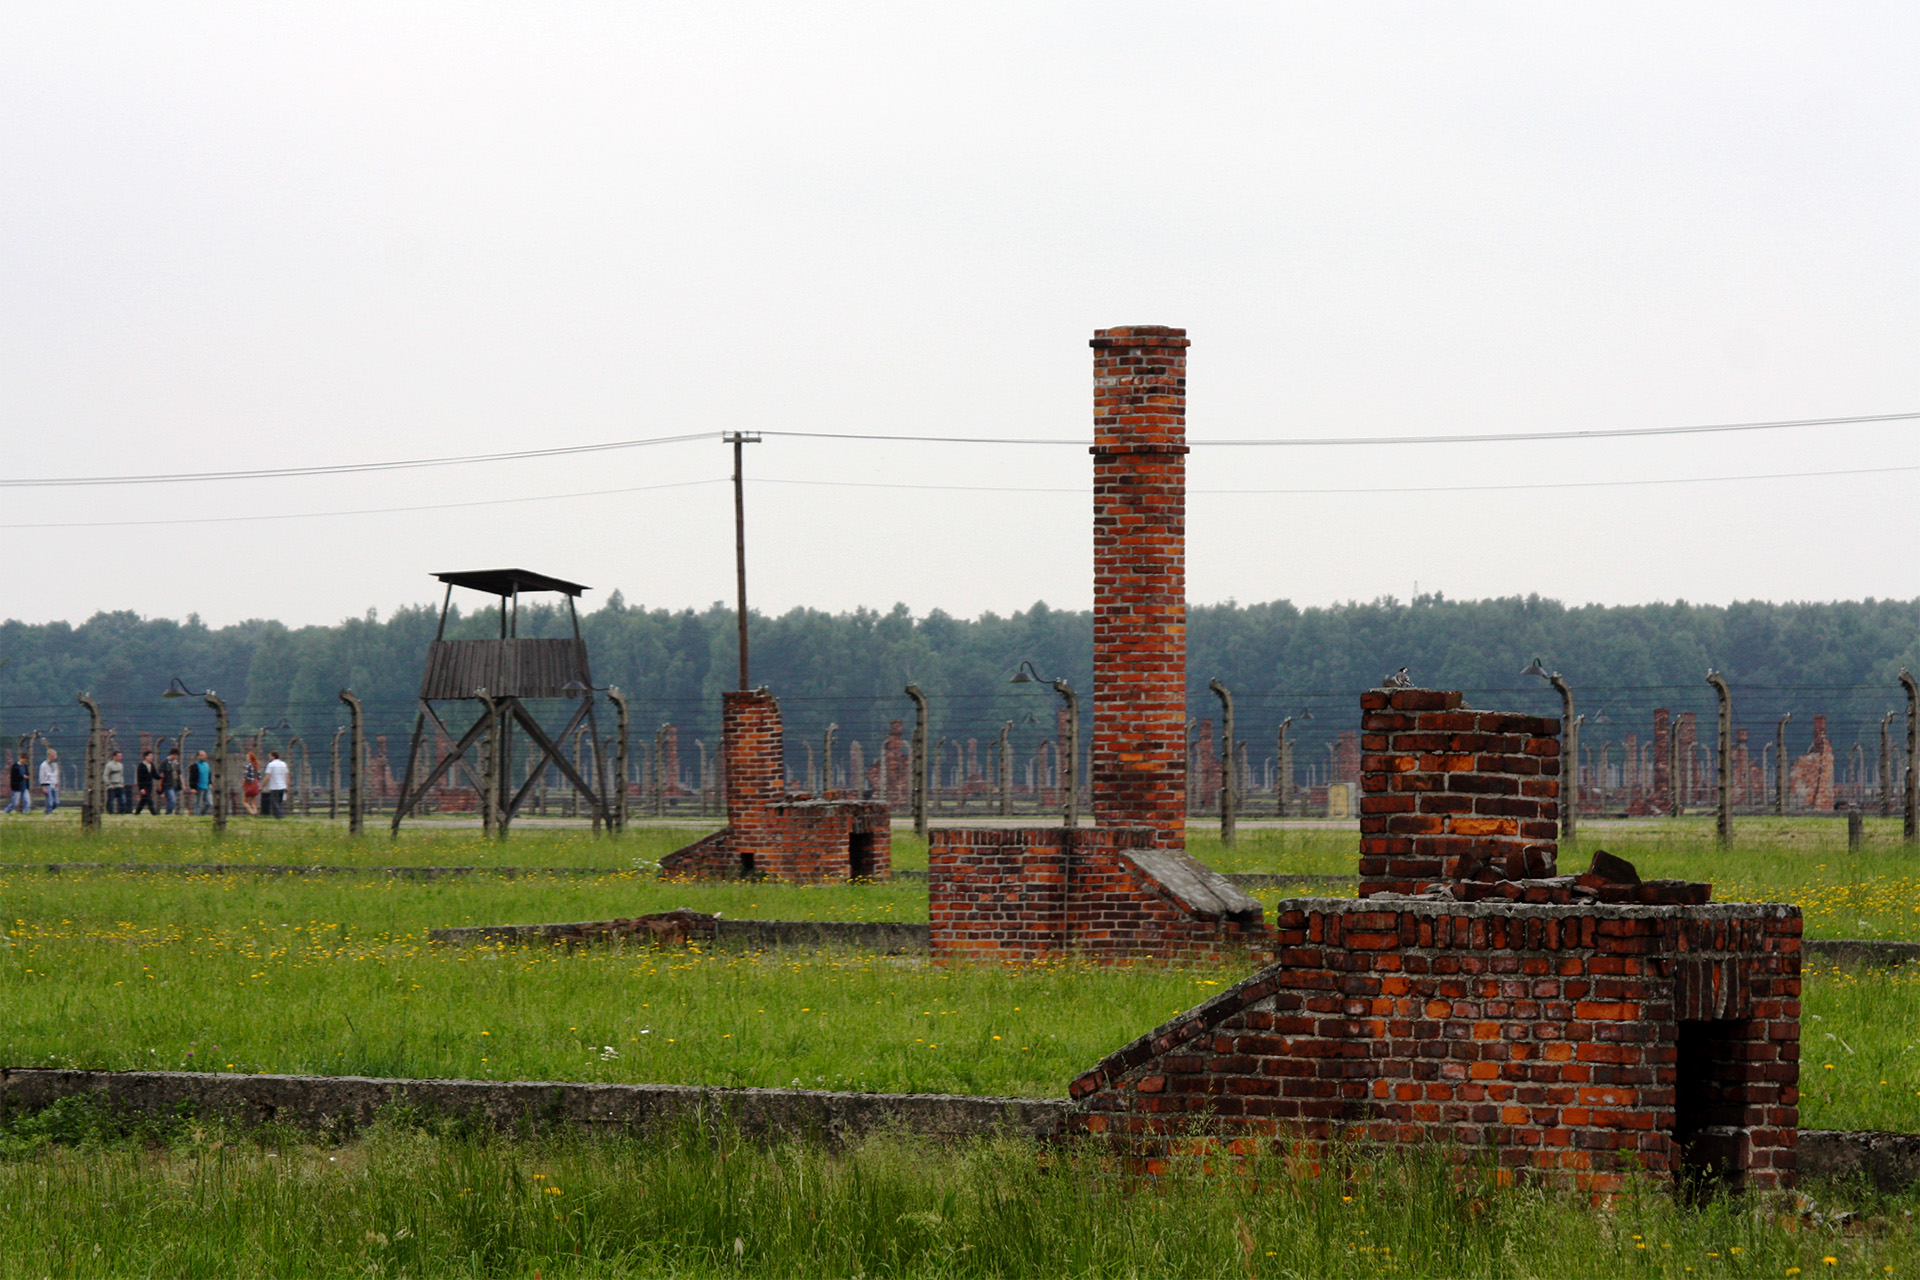 Building remnants from Birkenau (Auschwitz II).